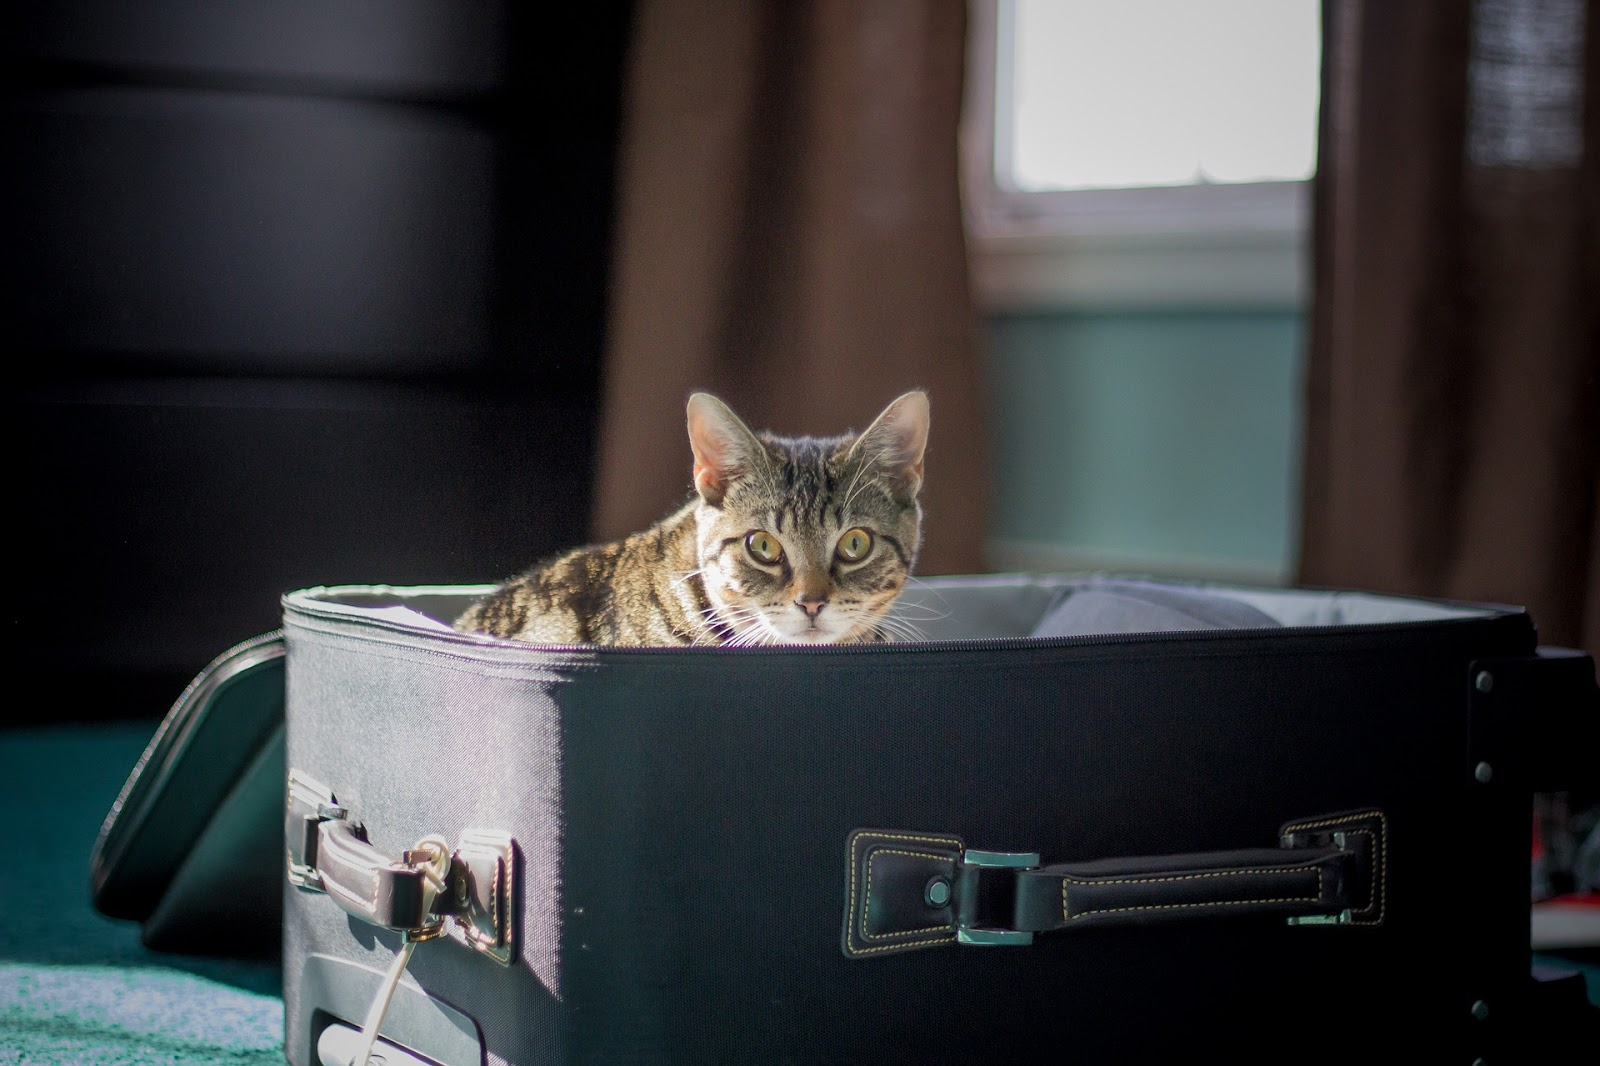 grey and brown cat peeking up out of an open, blue suitcase